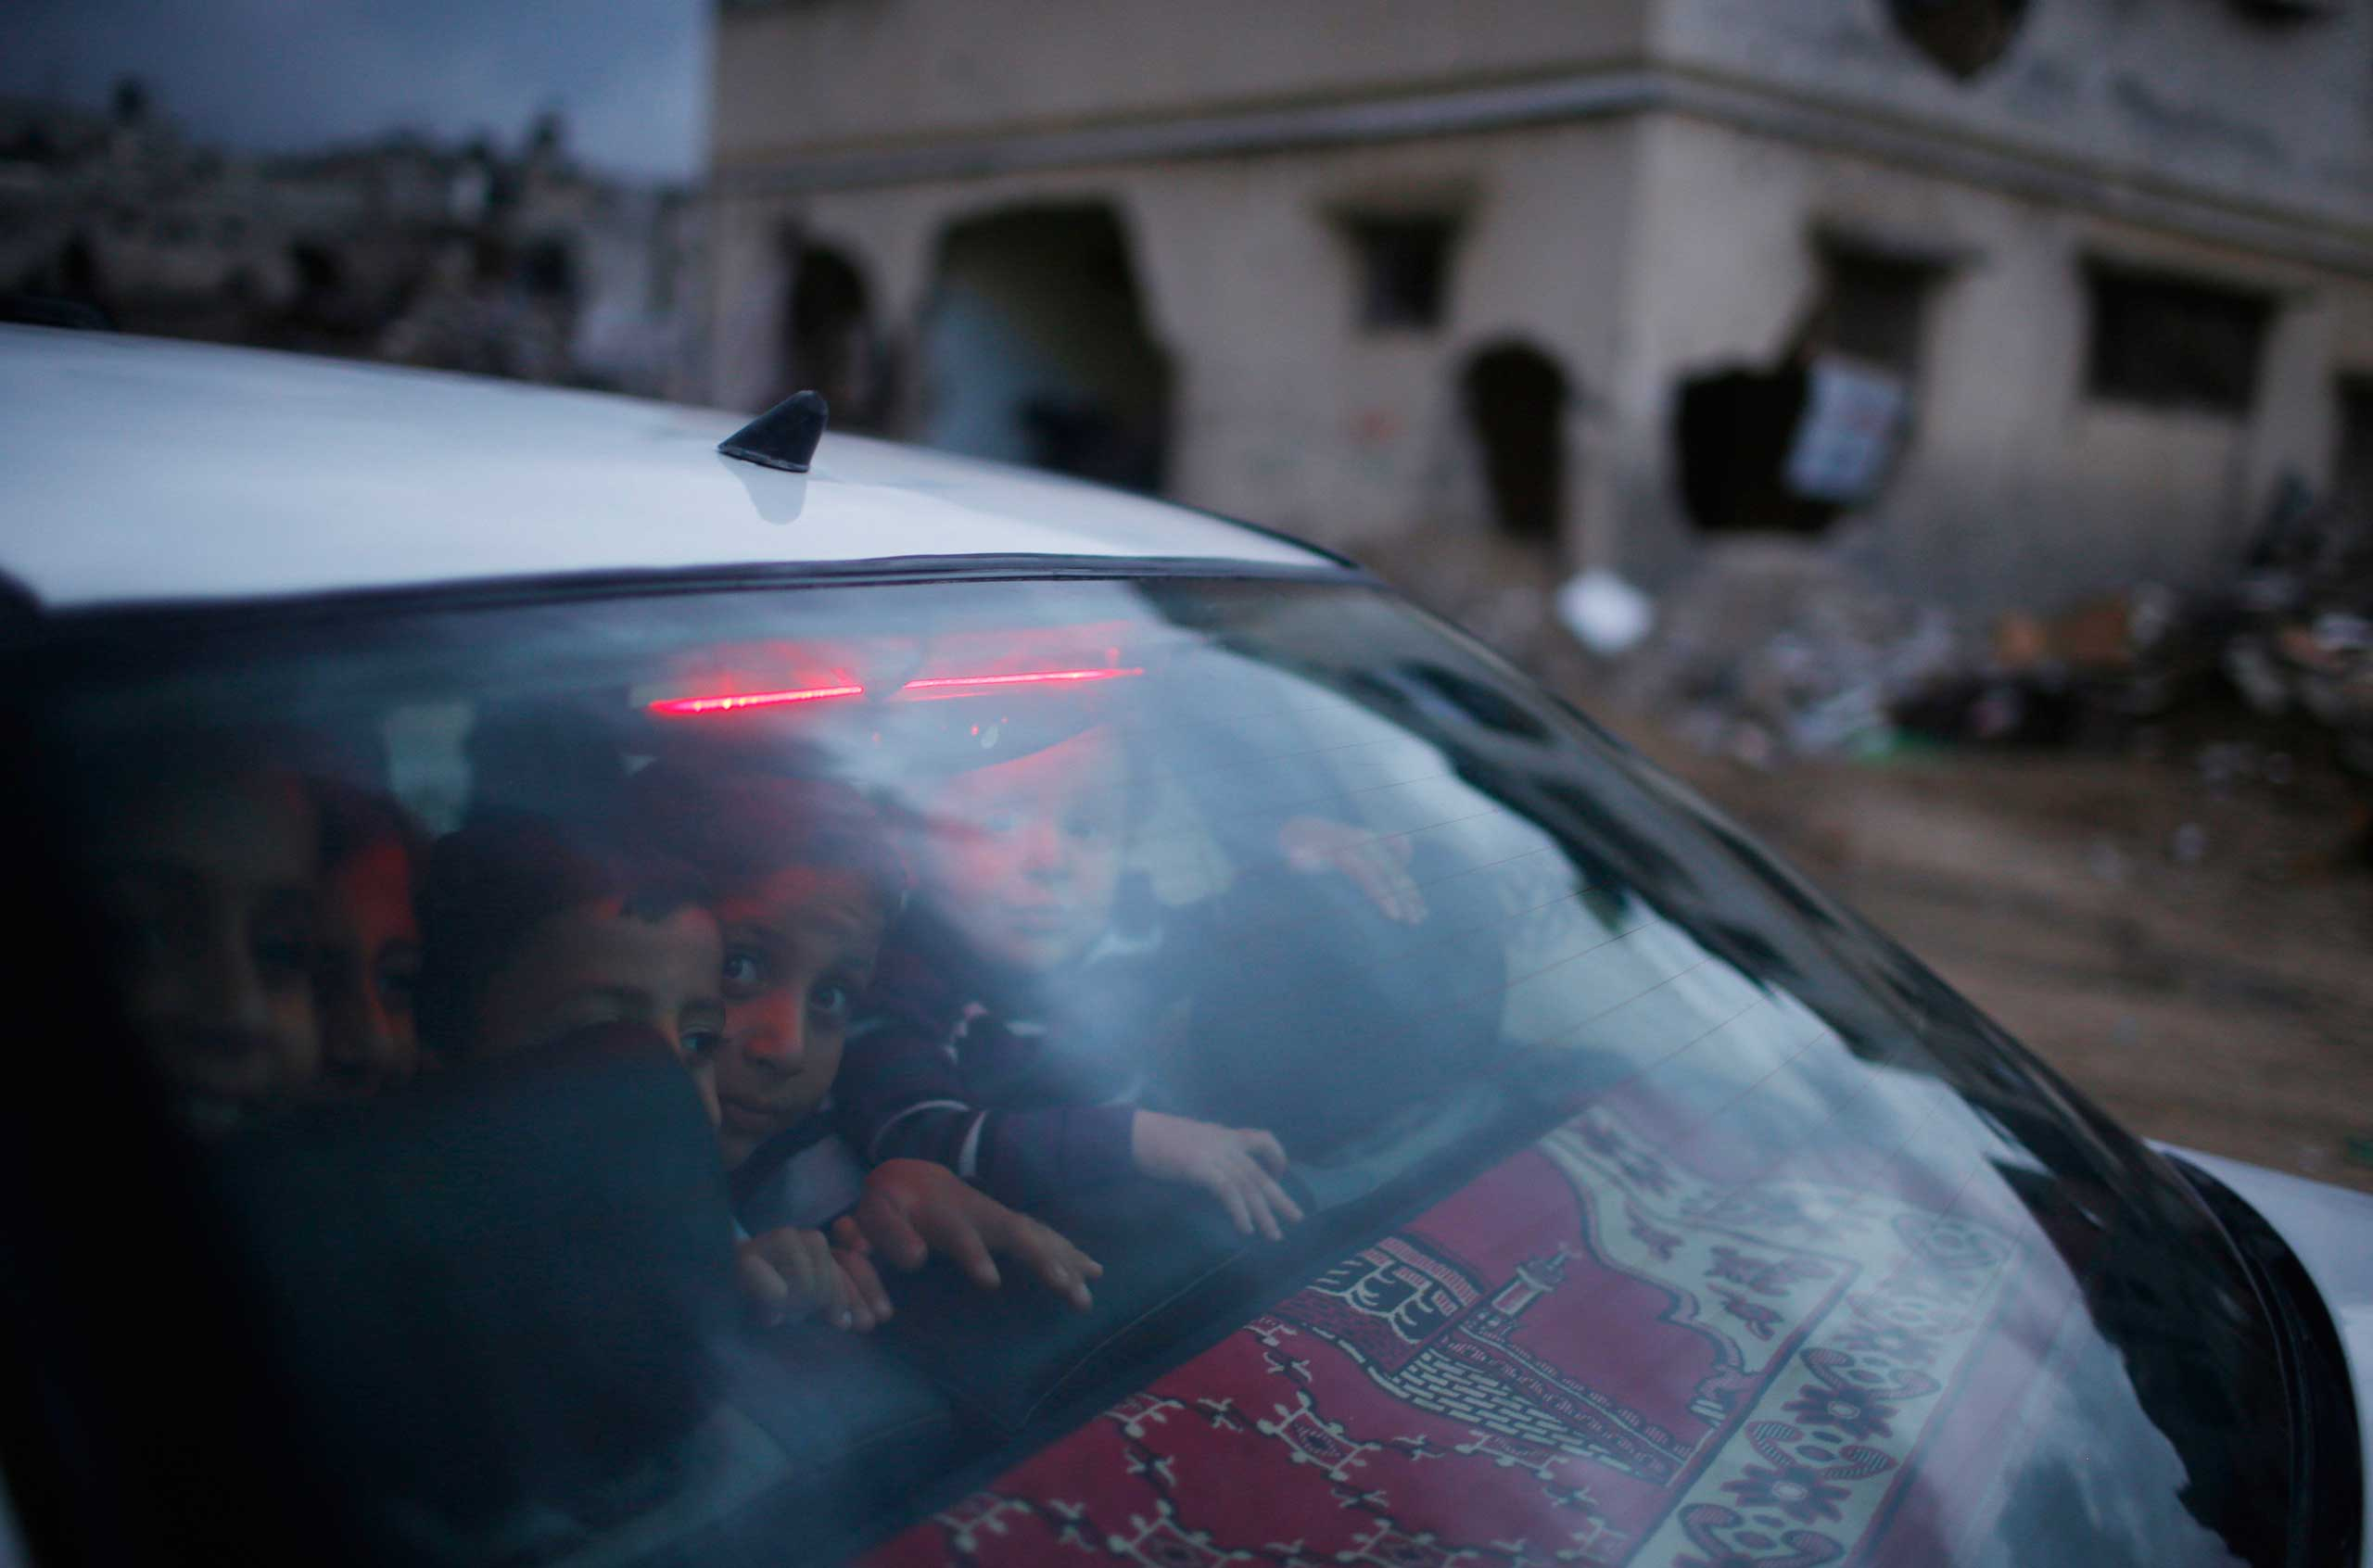 Oct. 19, 2014. Palestinian children look out of the rear windscreen of a car as they pass damaged houses in the east of Gaza City. An open-ended ceasefire between Israel and Hamas-led Gaza militants, mediated by Egypt, took effect on August 26 after a seven-week conflict.